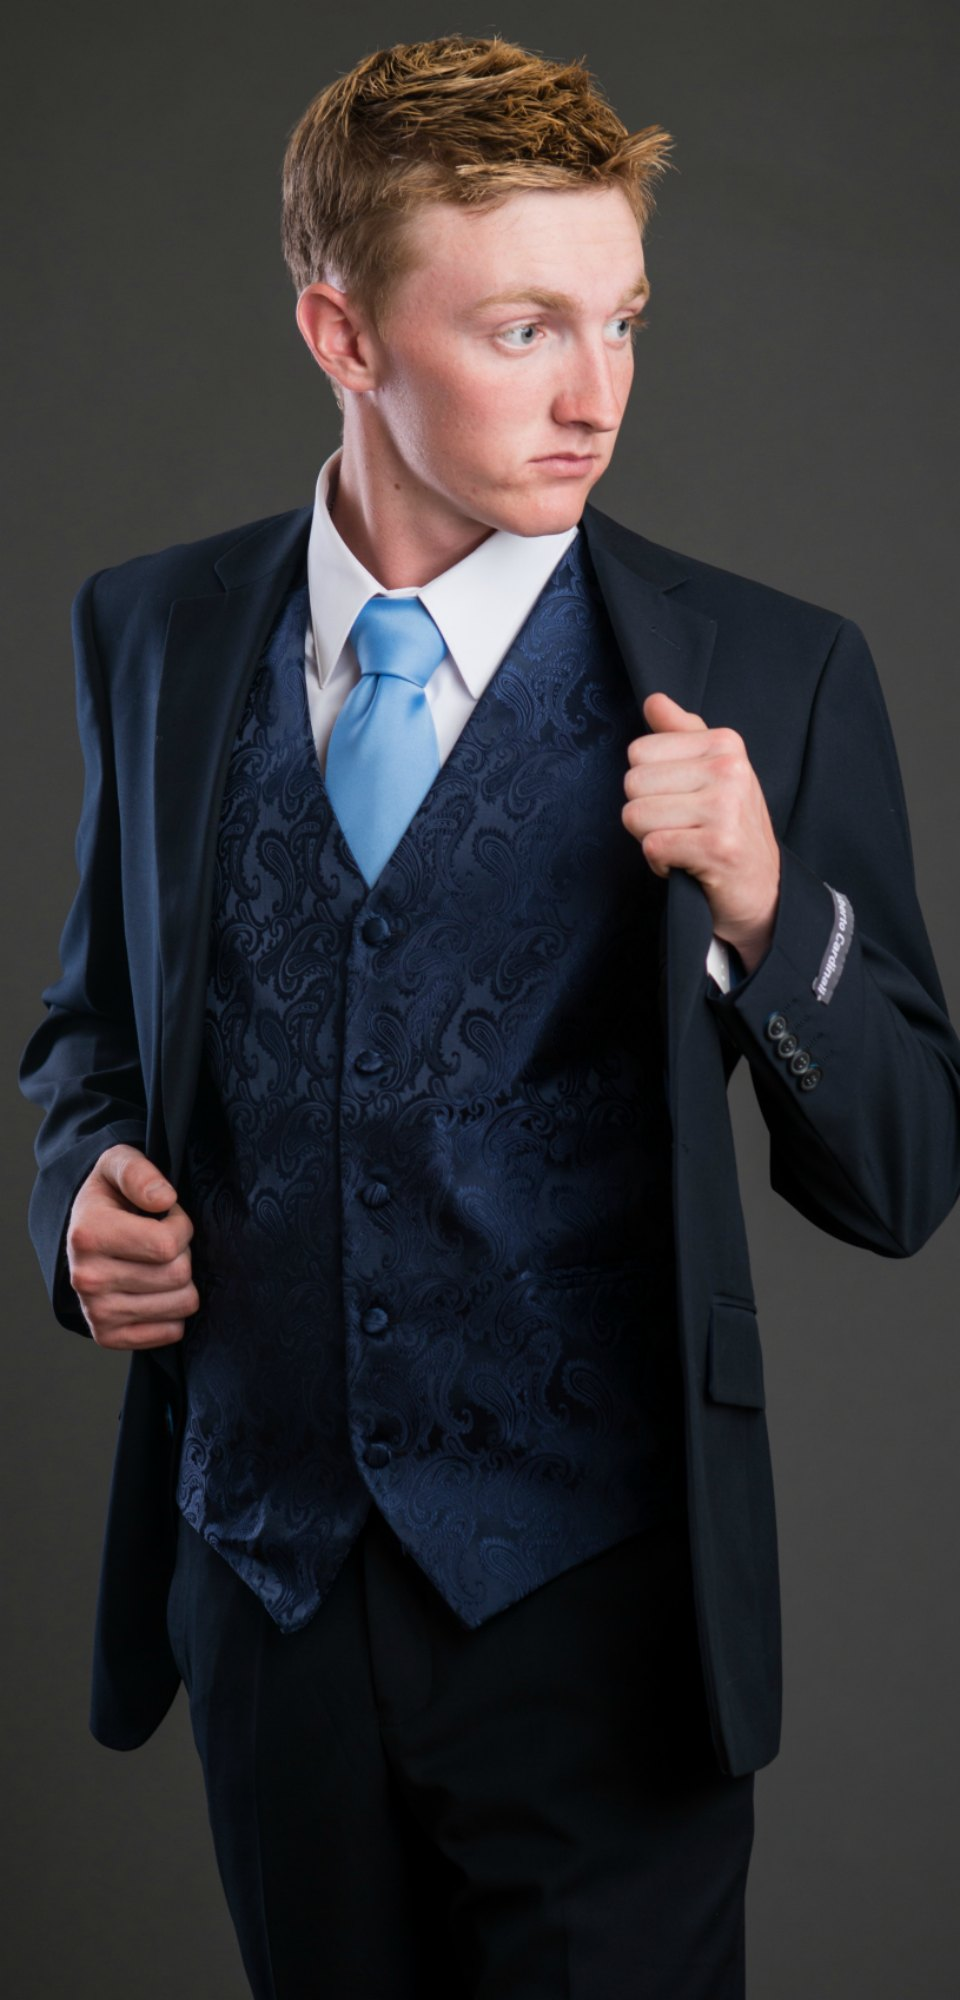 Men's Suits with a Twist